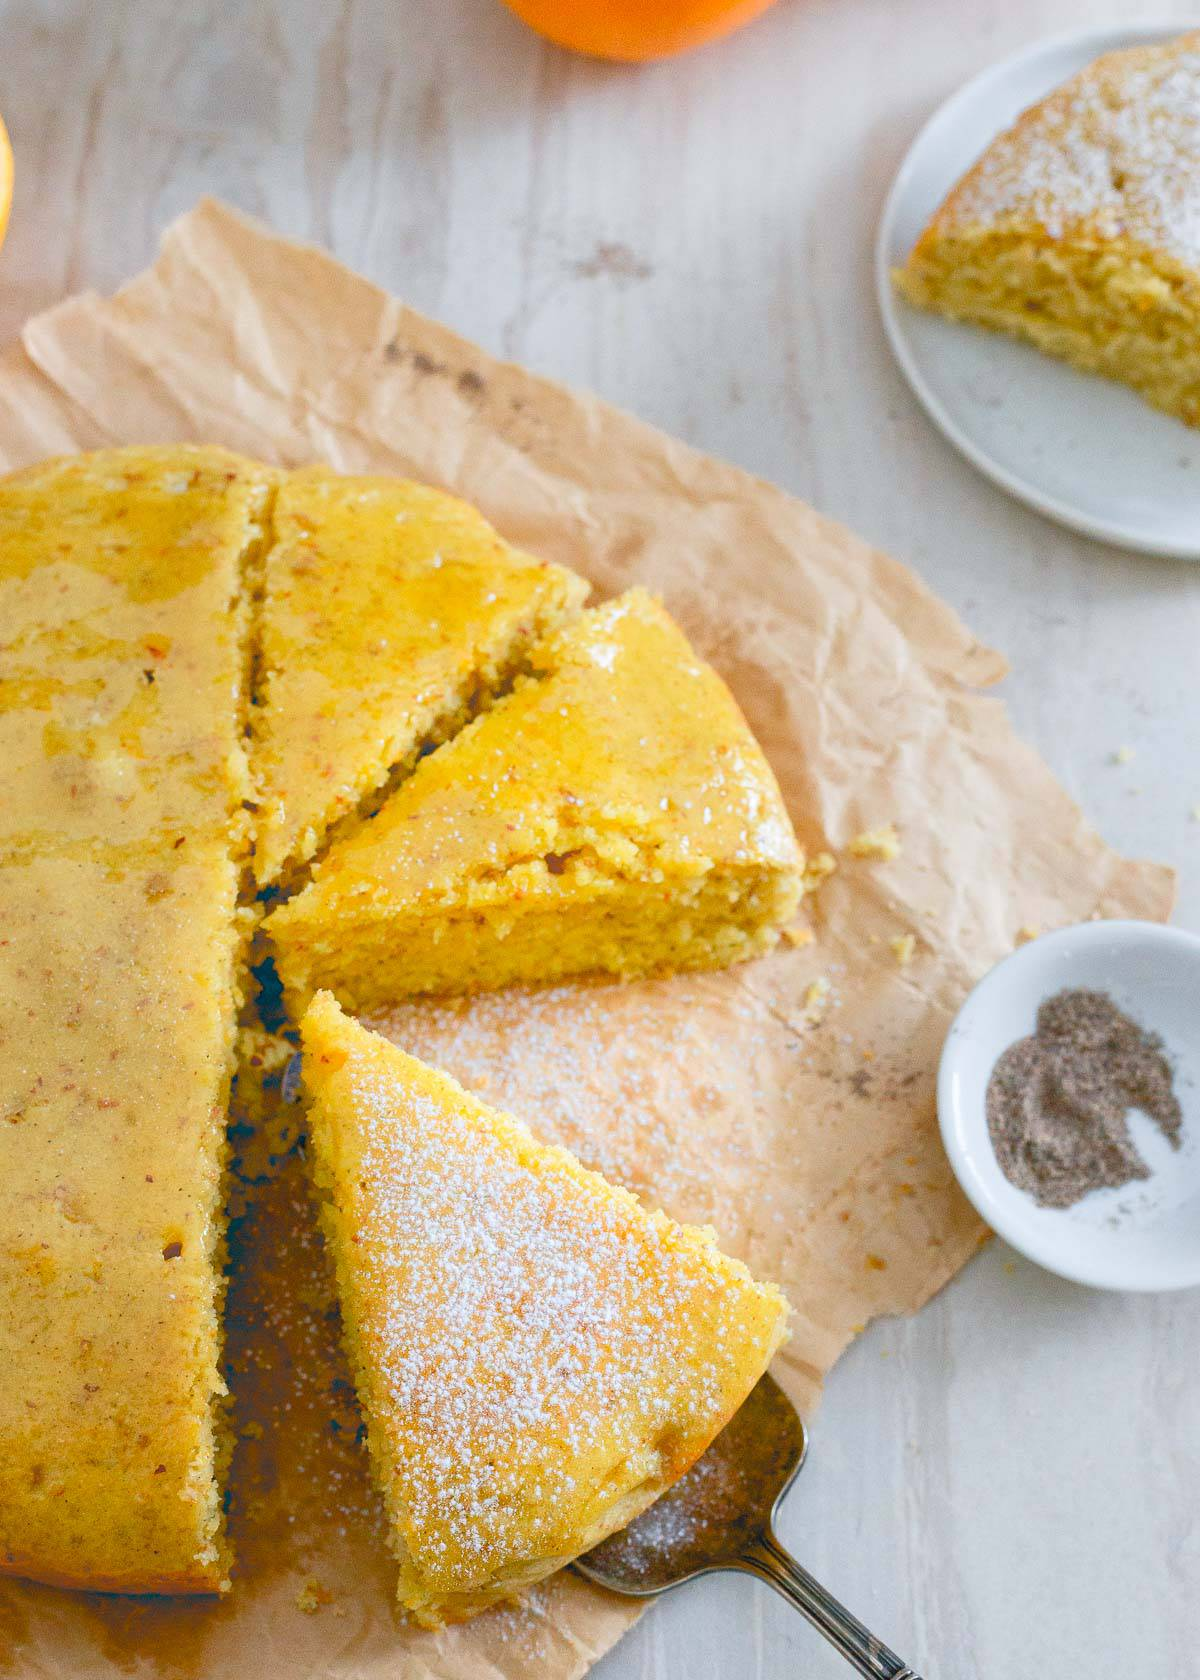 This glazed orange cardamom cake is a wonderfully simple dessert bursting with winter citrus and spice. It's moist, hearty texture and sticky glaze make it perfect with a cup of tea.